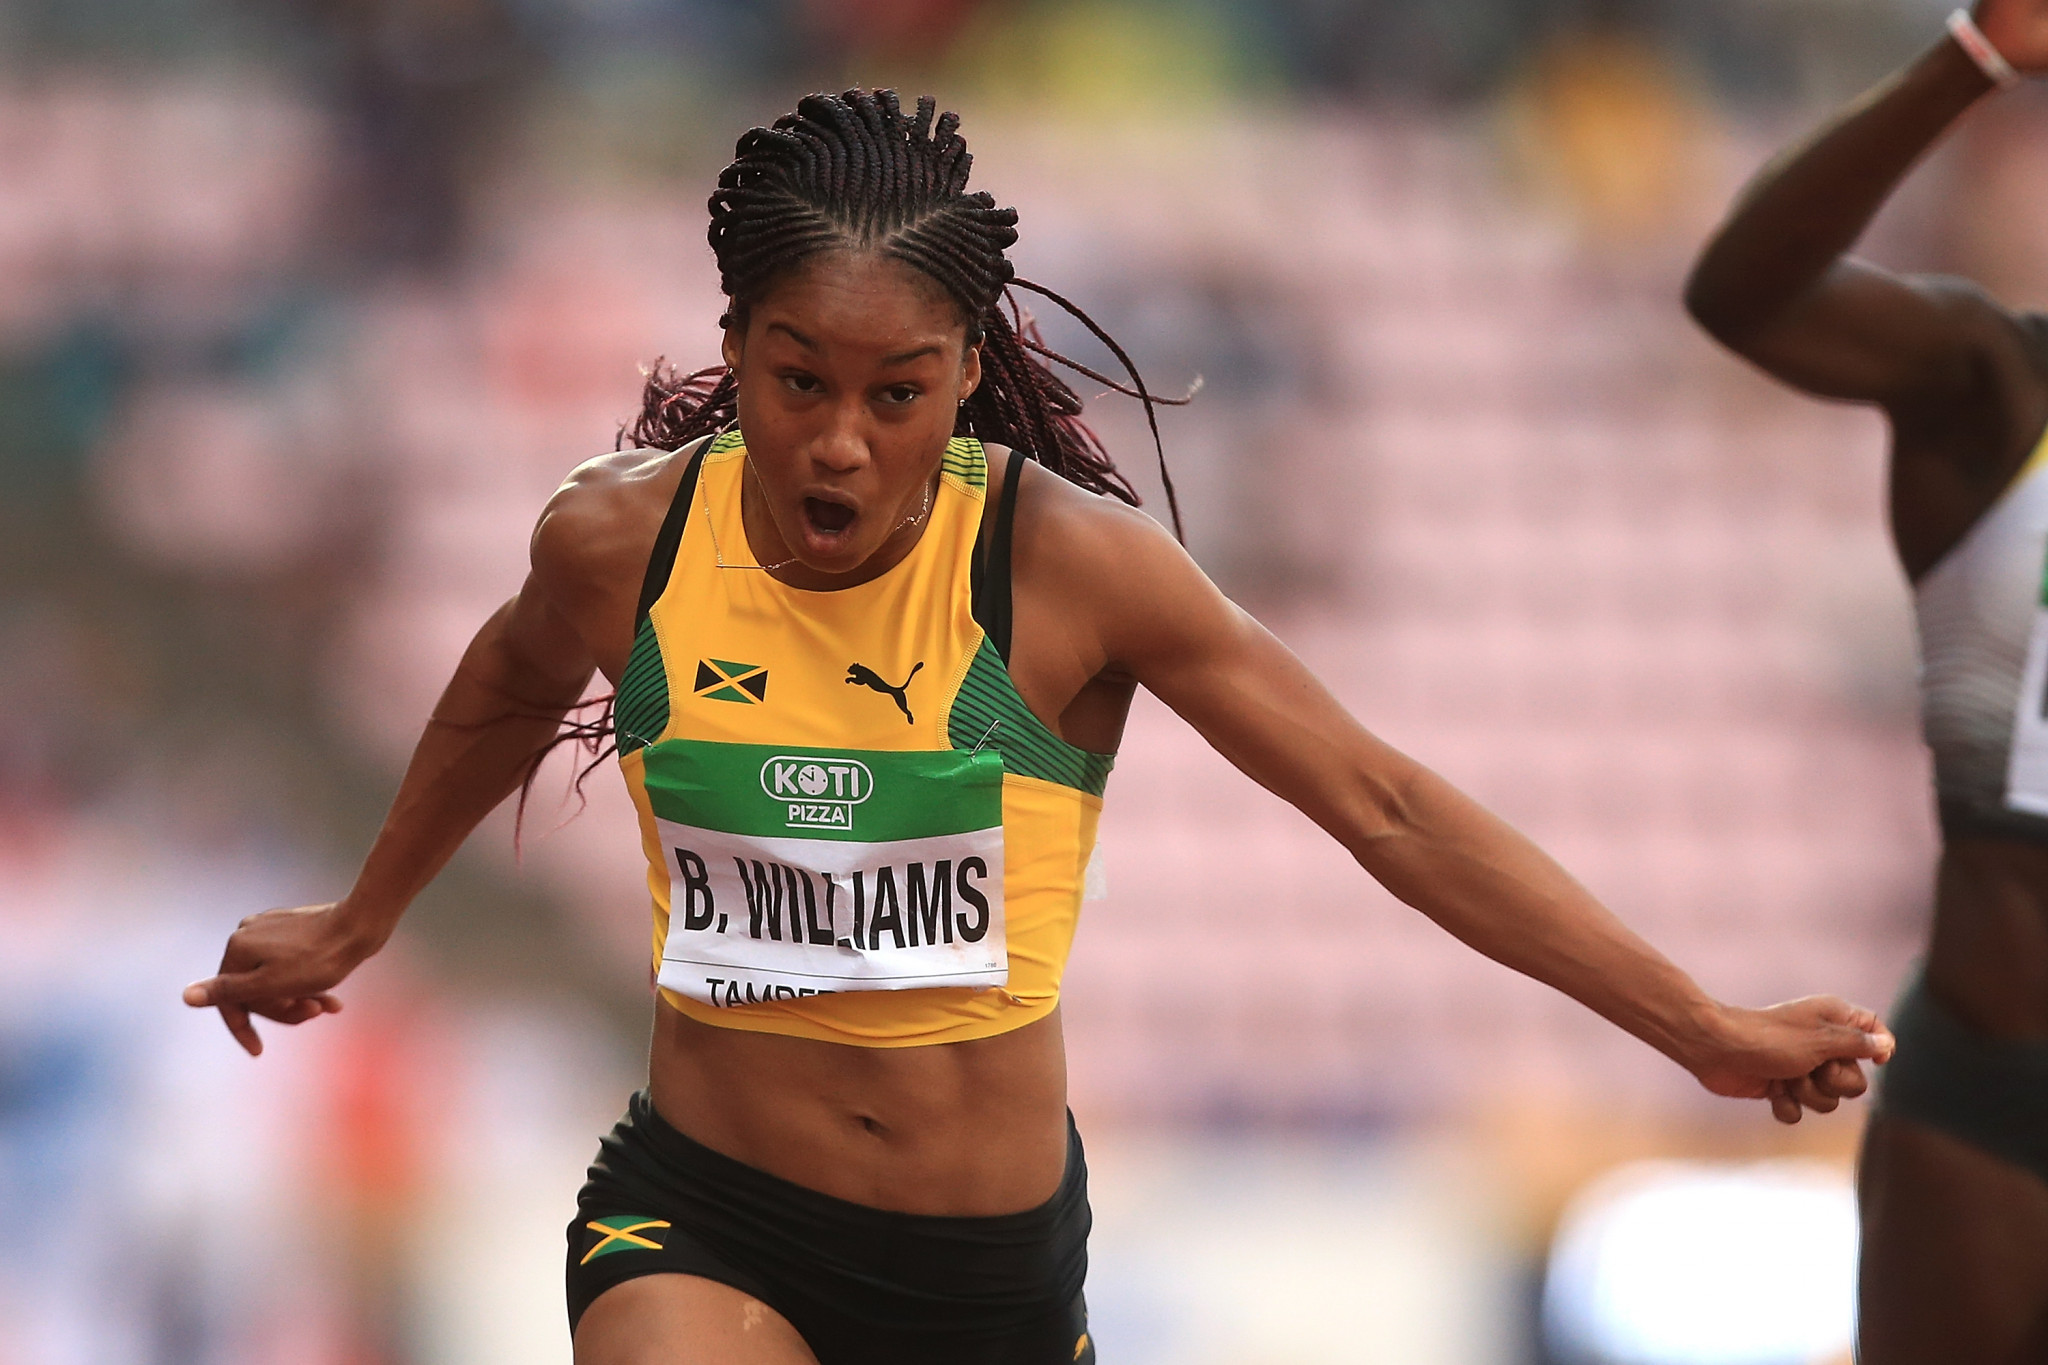 Jamaica's Briana Williams is the current world under-20 champion in the 100 and 200 metres ©Getty Images